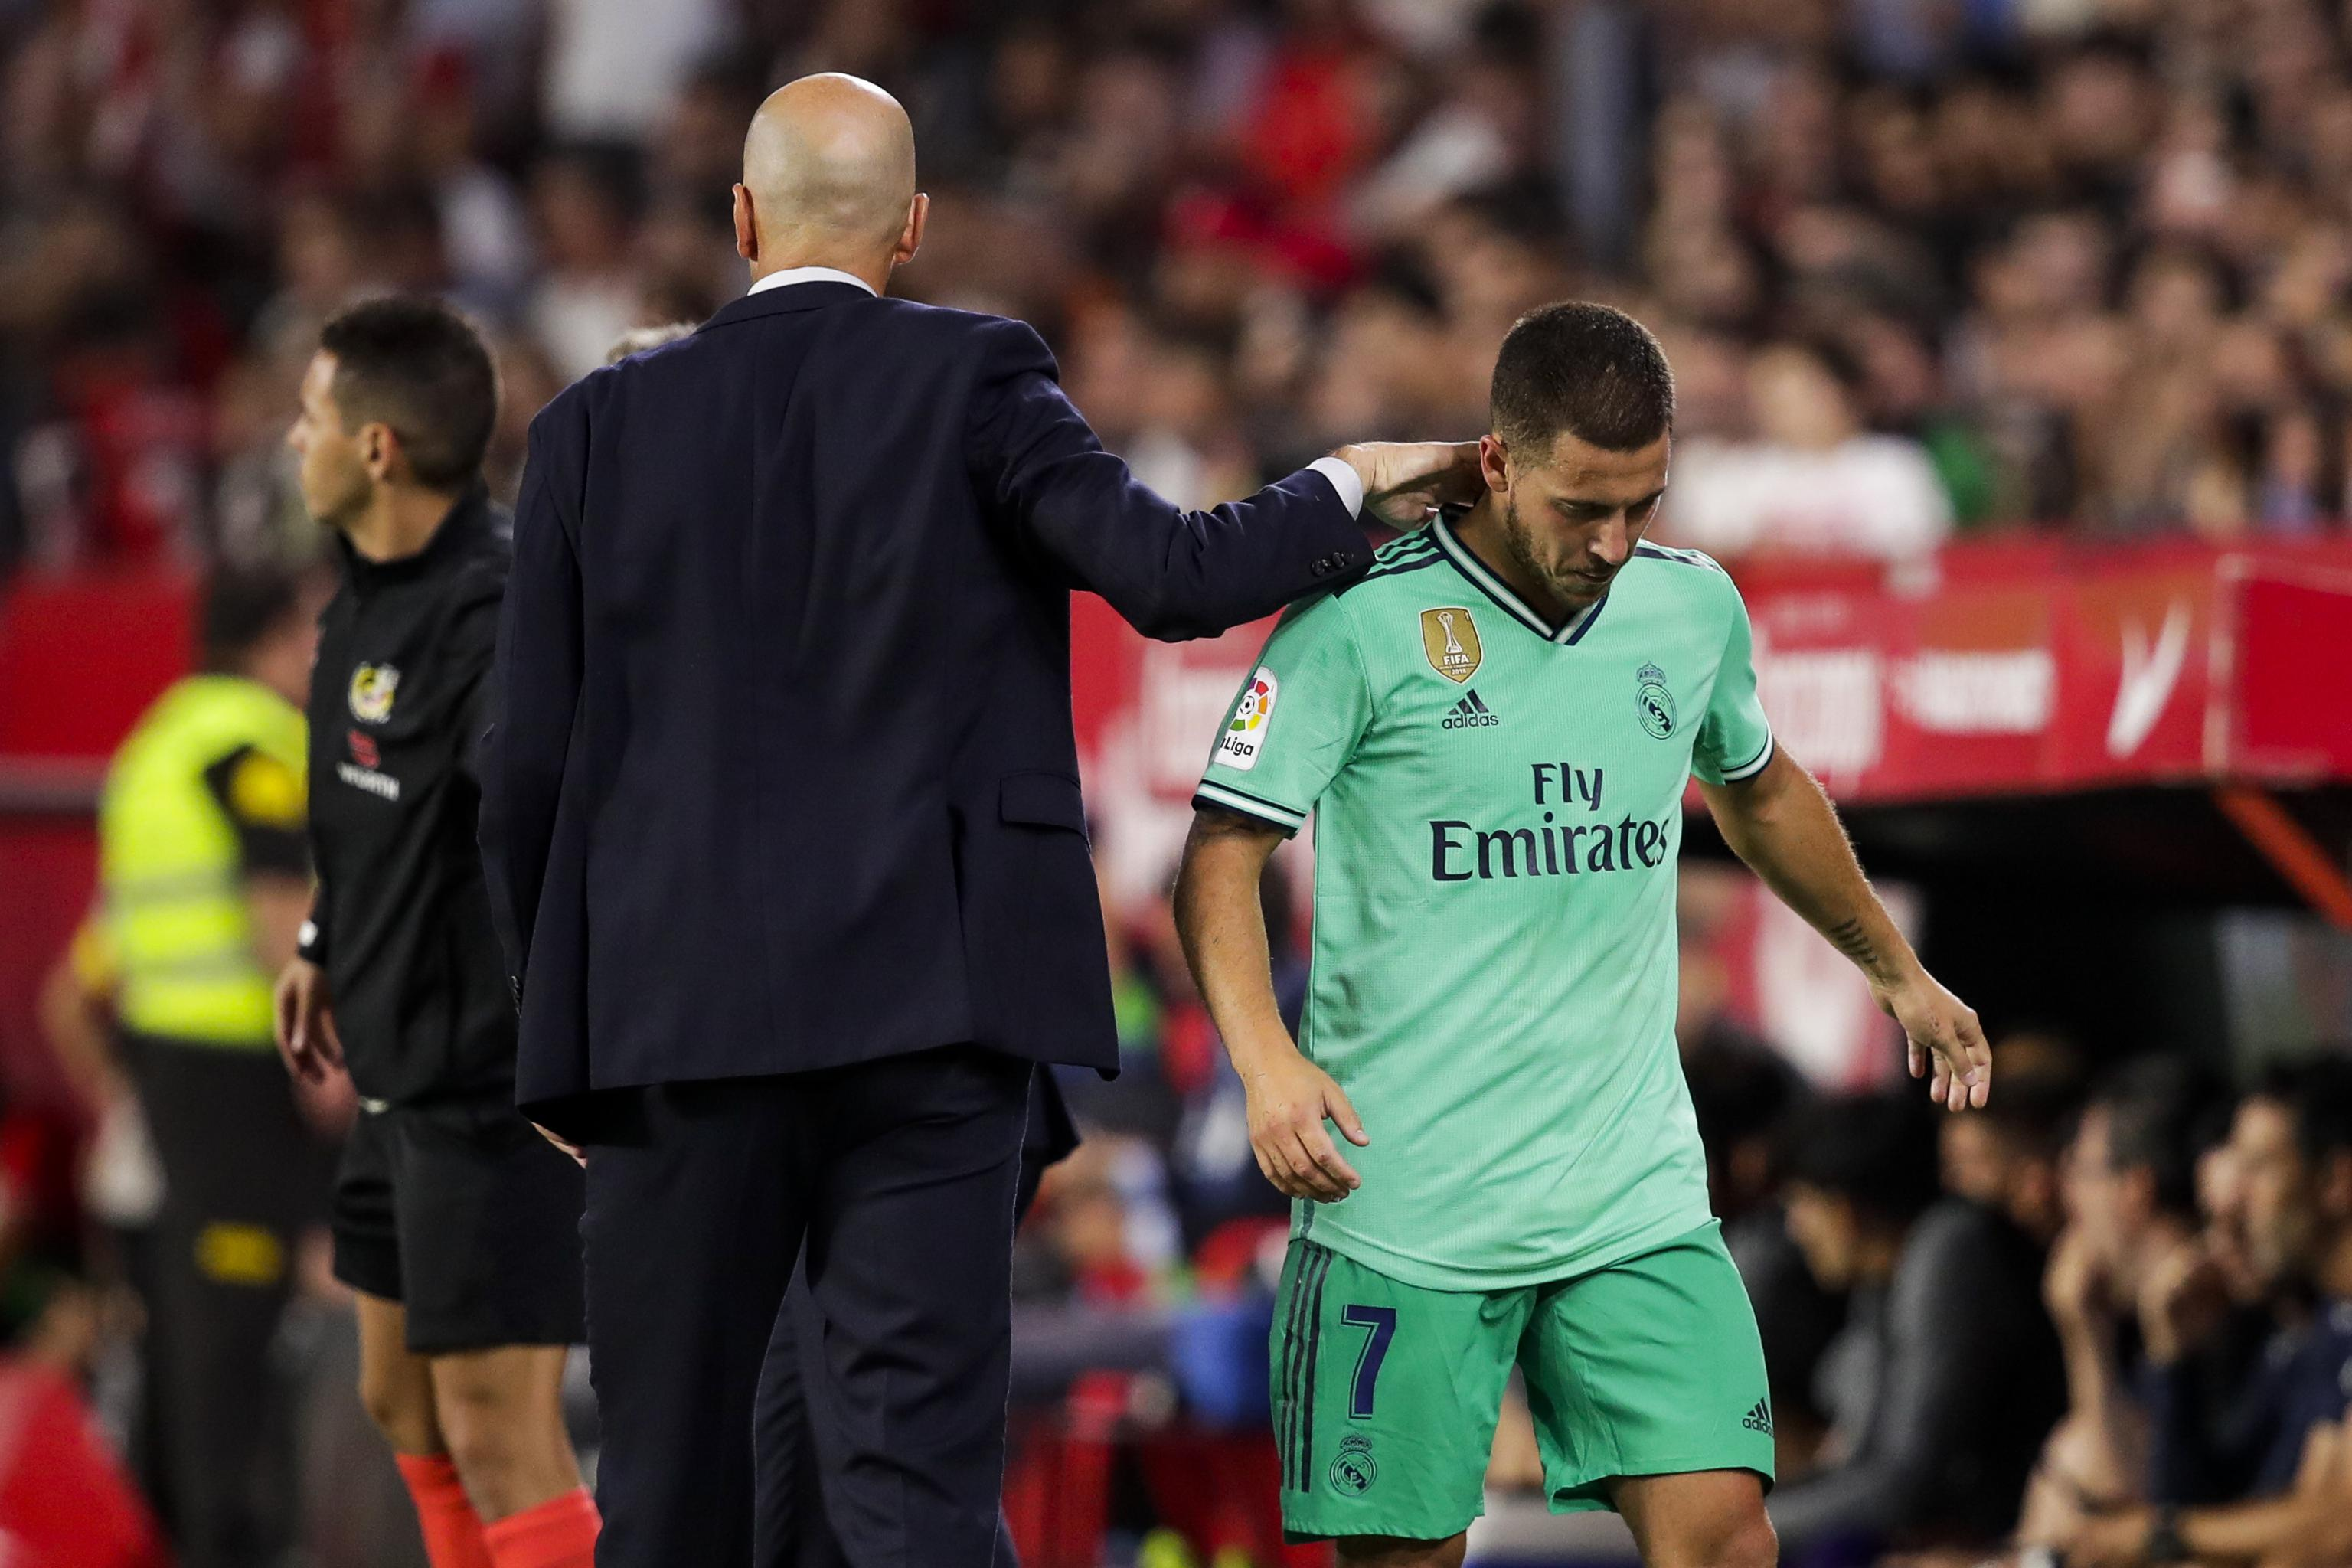 Zinedine Zidane: Eden Hazard 'Ready to Play' for Real Madrid After Injury  Layoff | Bleacher Report | Latest News, Videos and Highlights